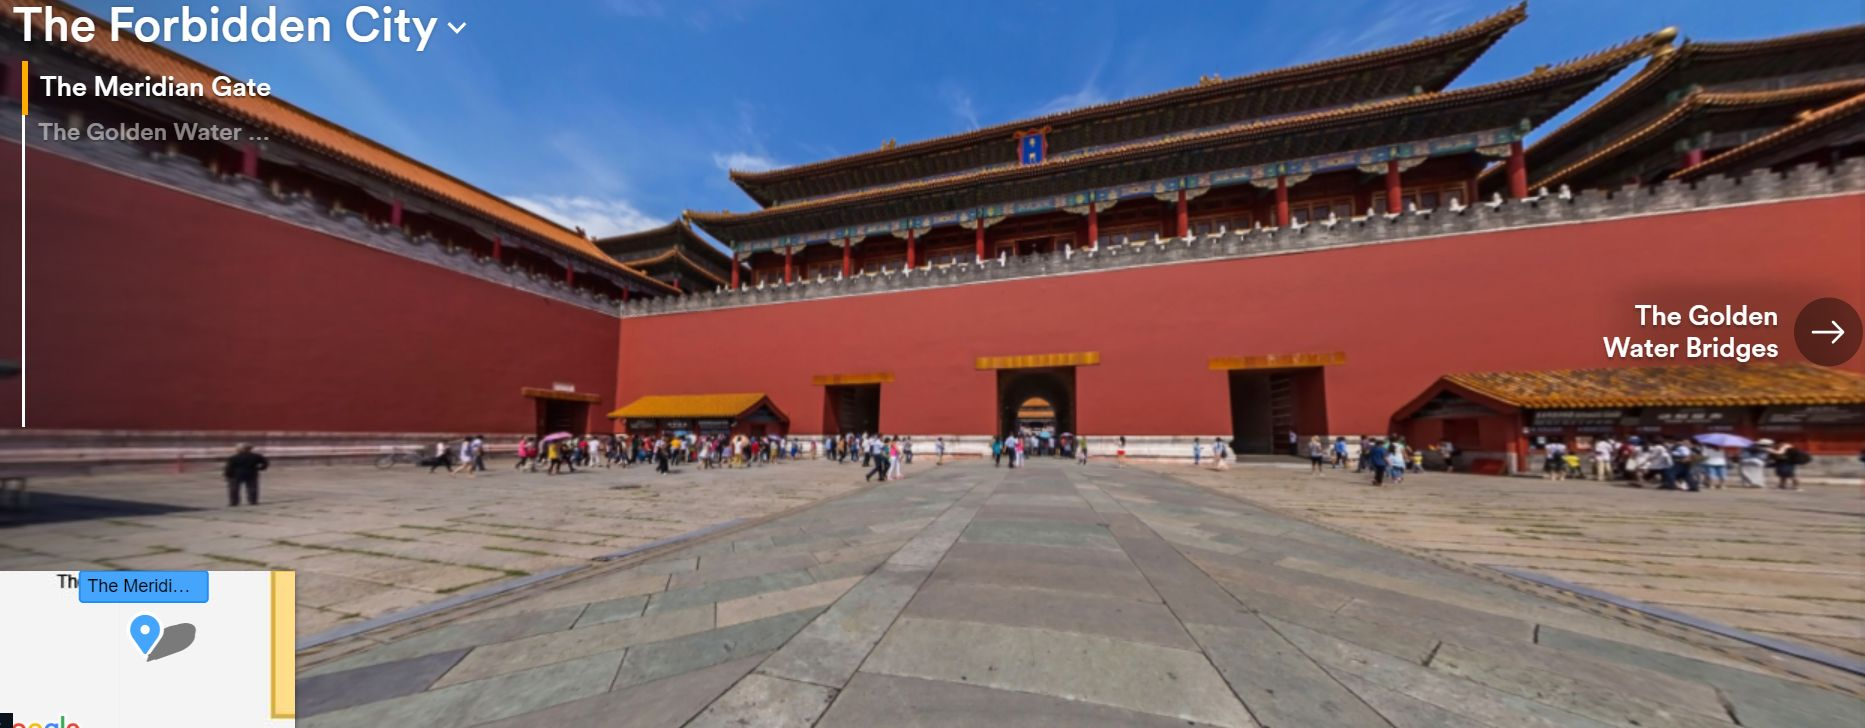 The Forbidden City's Meridian Gate